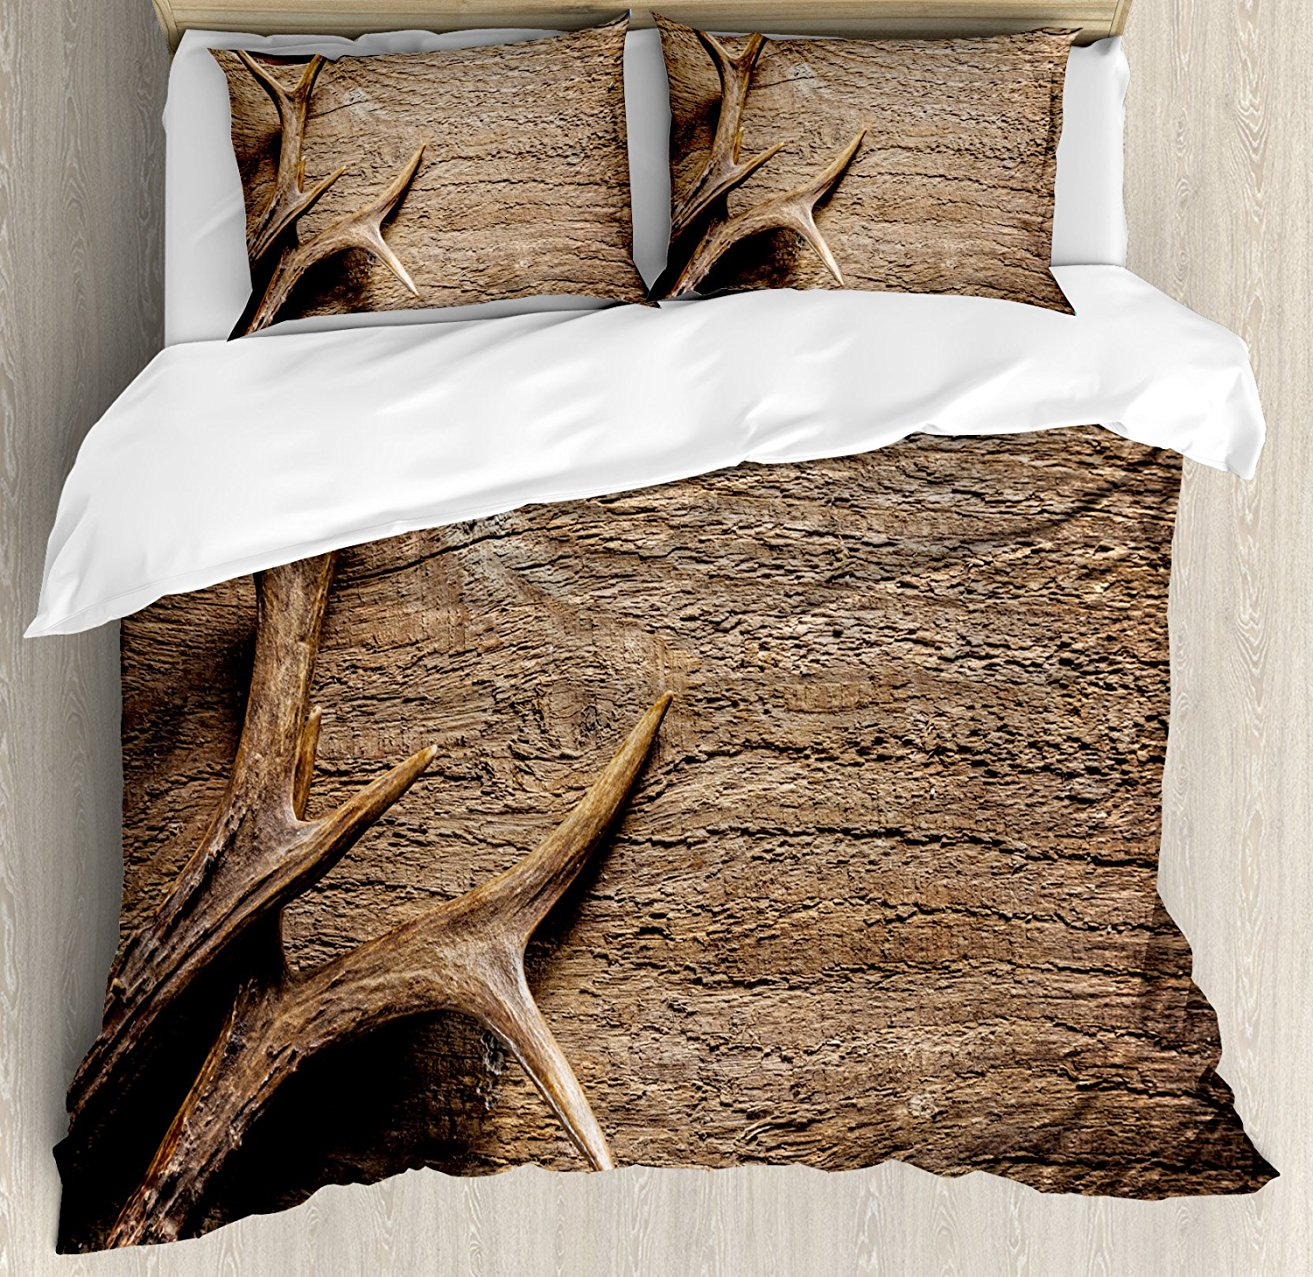 Duvet Cover Set, Deer Antlers on Wood Table Rustic Texture Surface Hunting Season Decorating, 4 Piece Bedding Set